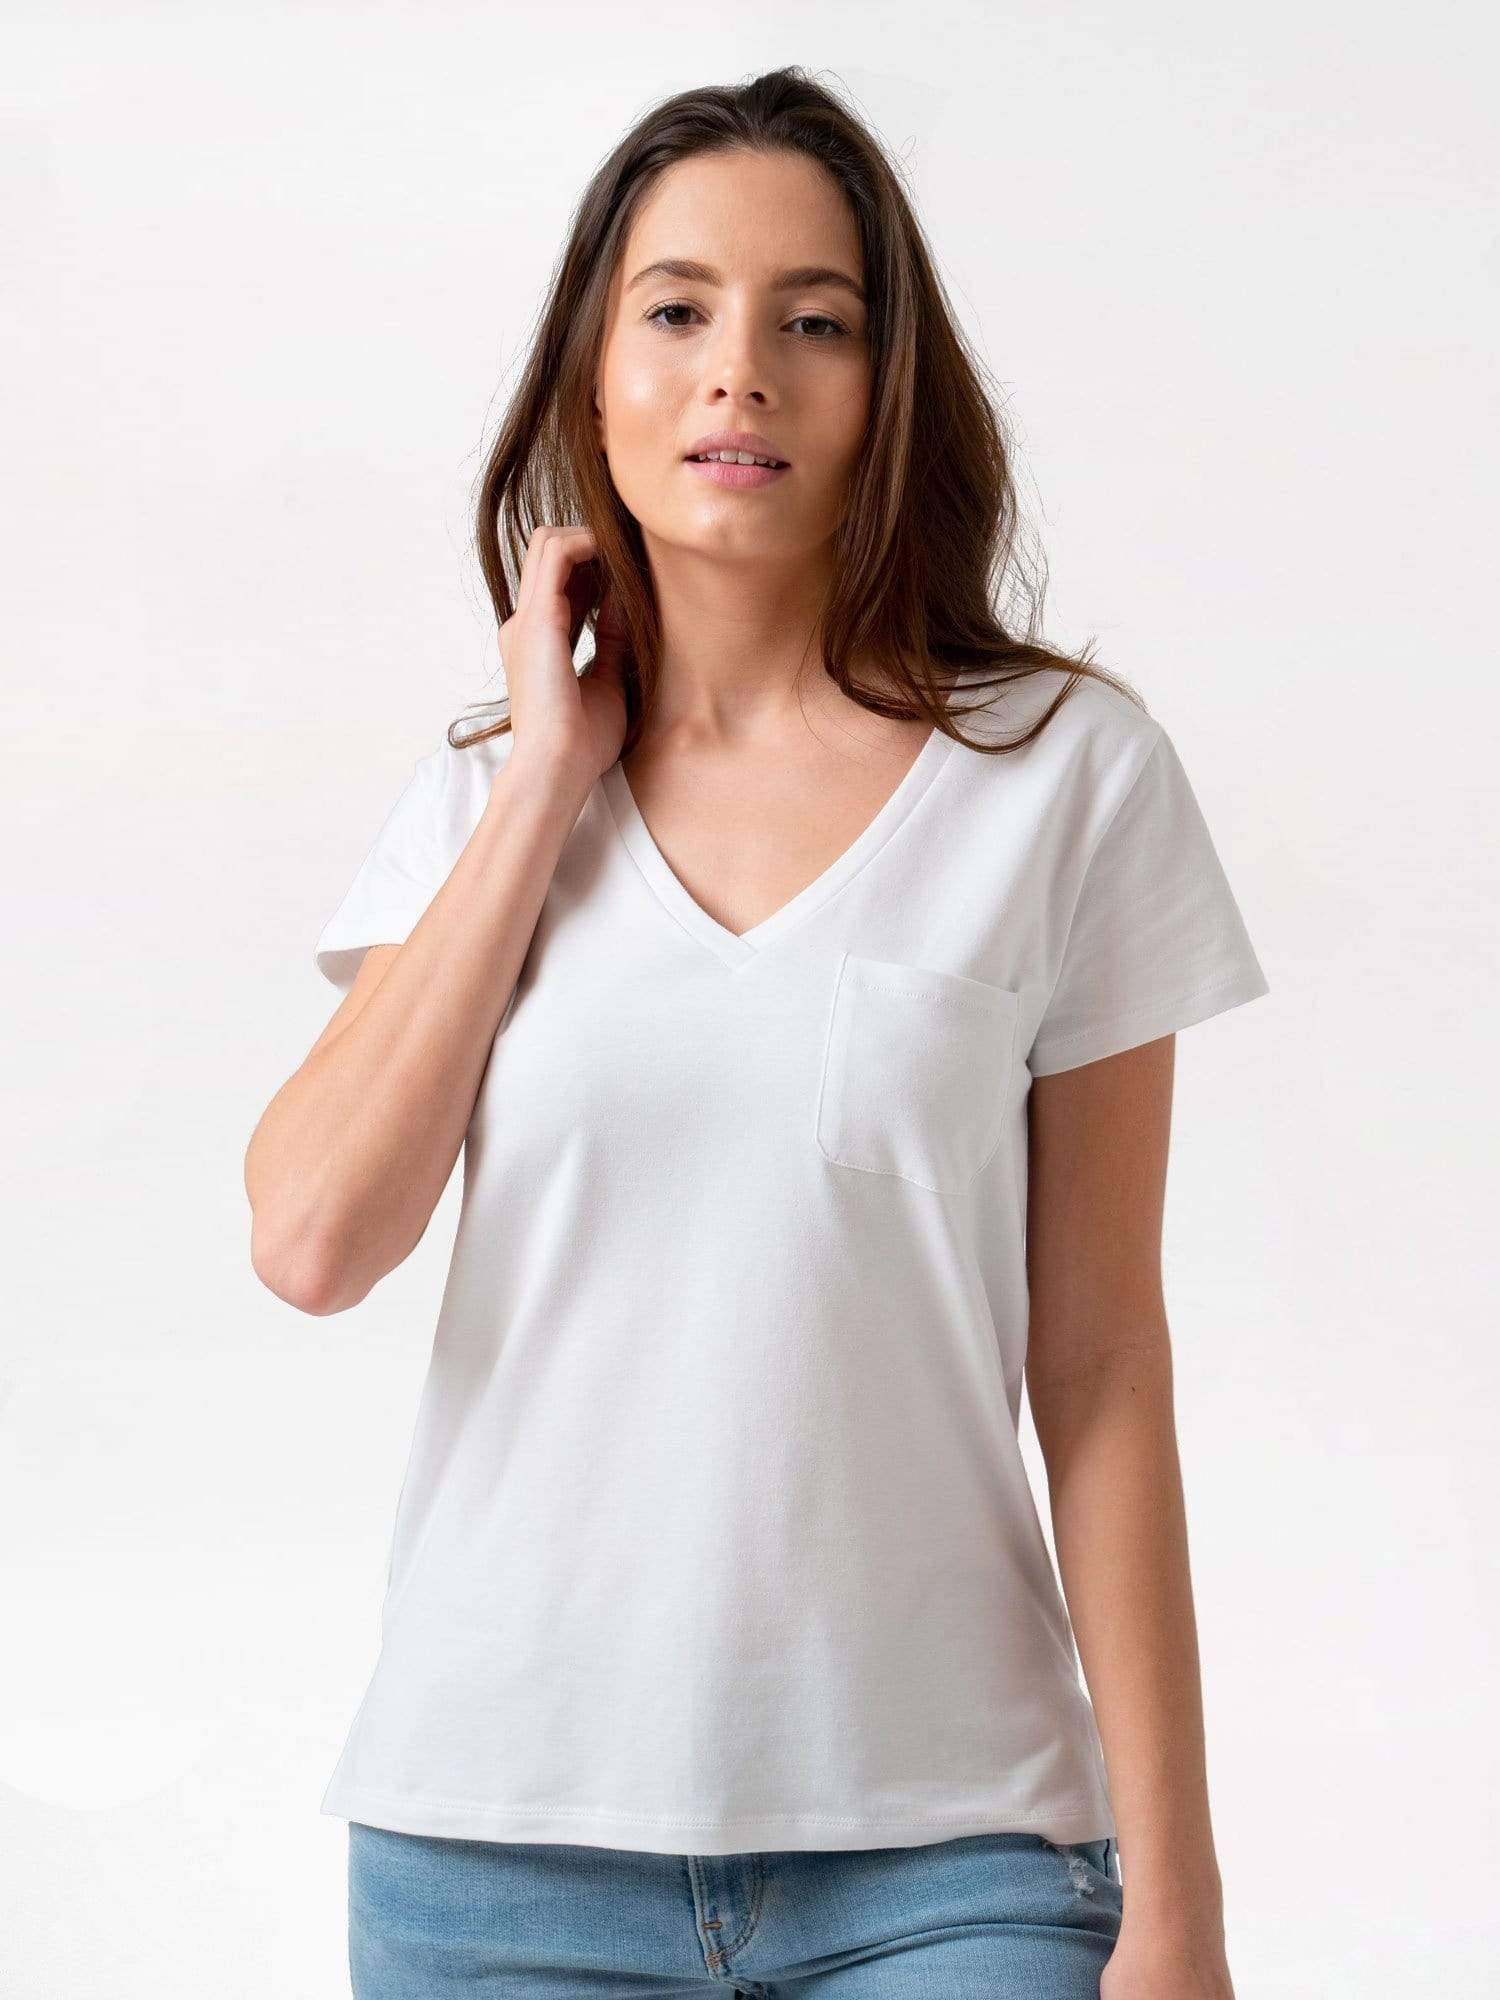 Women's Pocket Tee - White | Zaggora UK